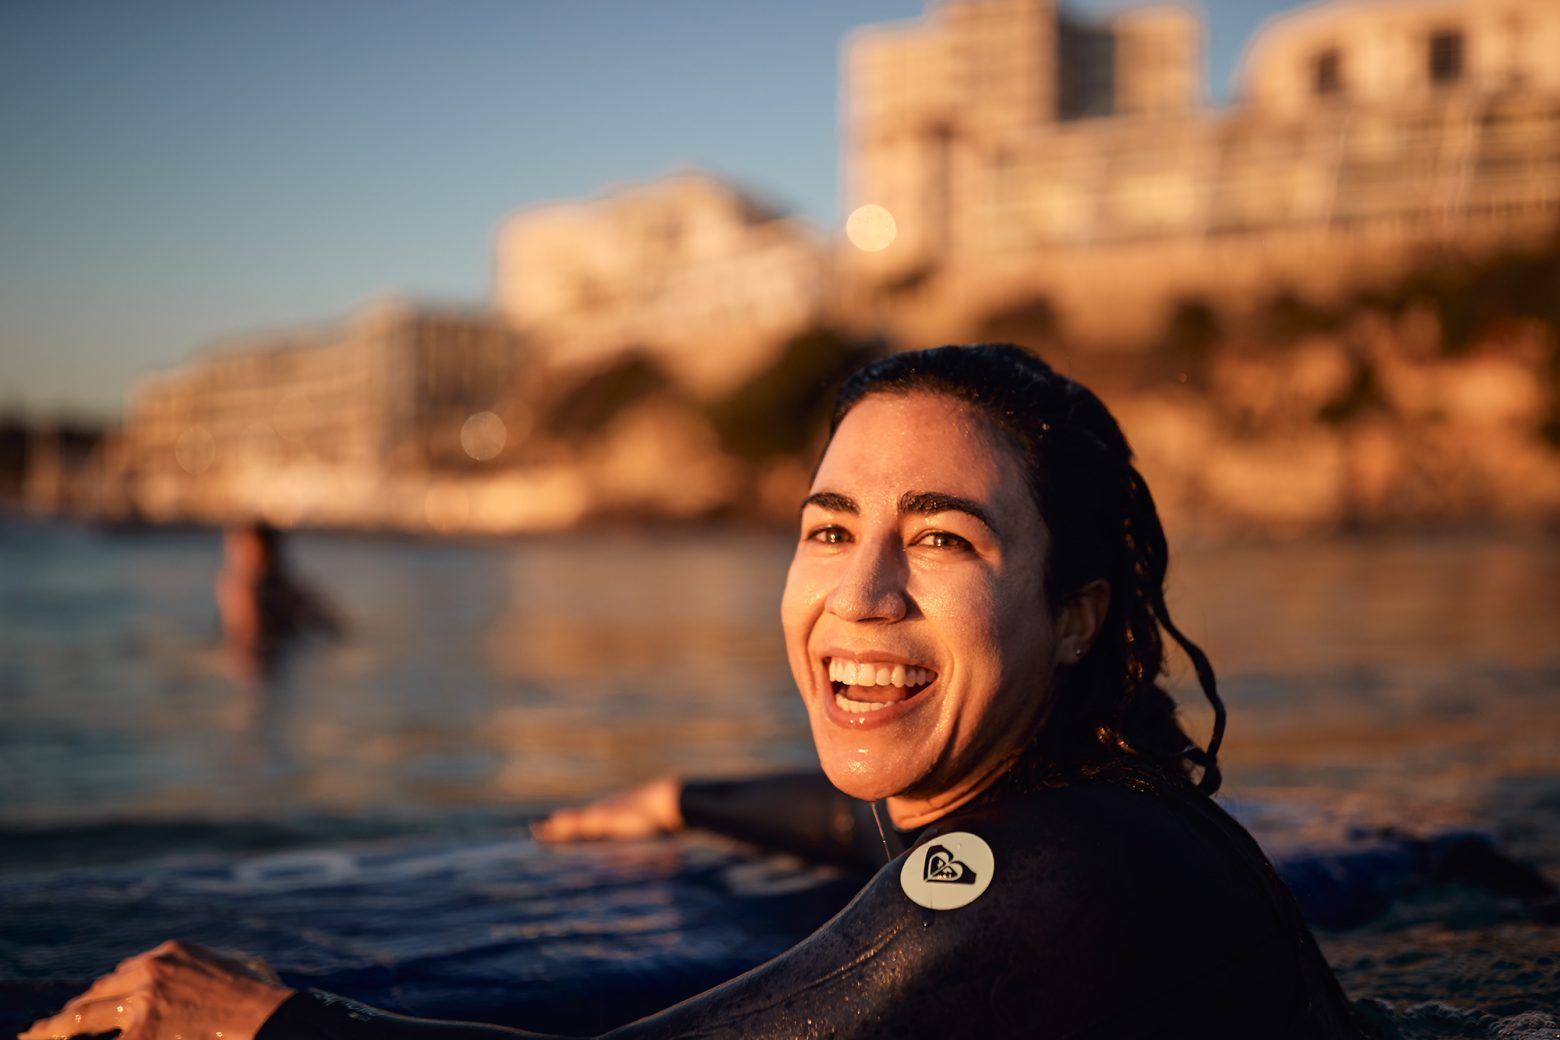 A very happy Silvanie - sorry, I missed your surfing shot (out of focus)